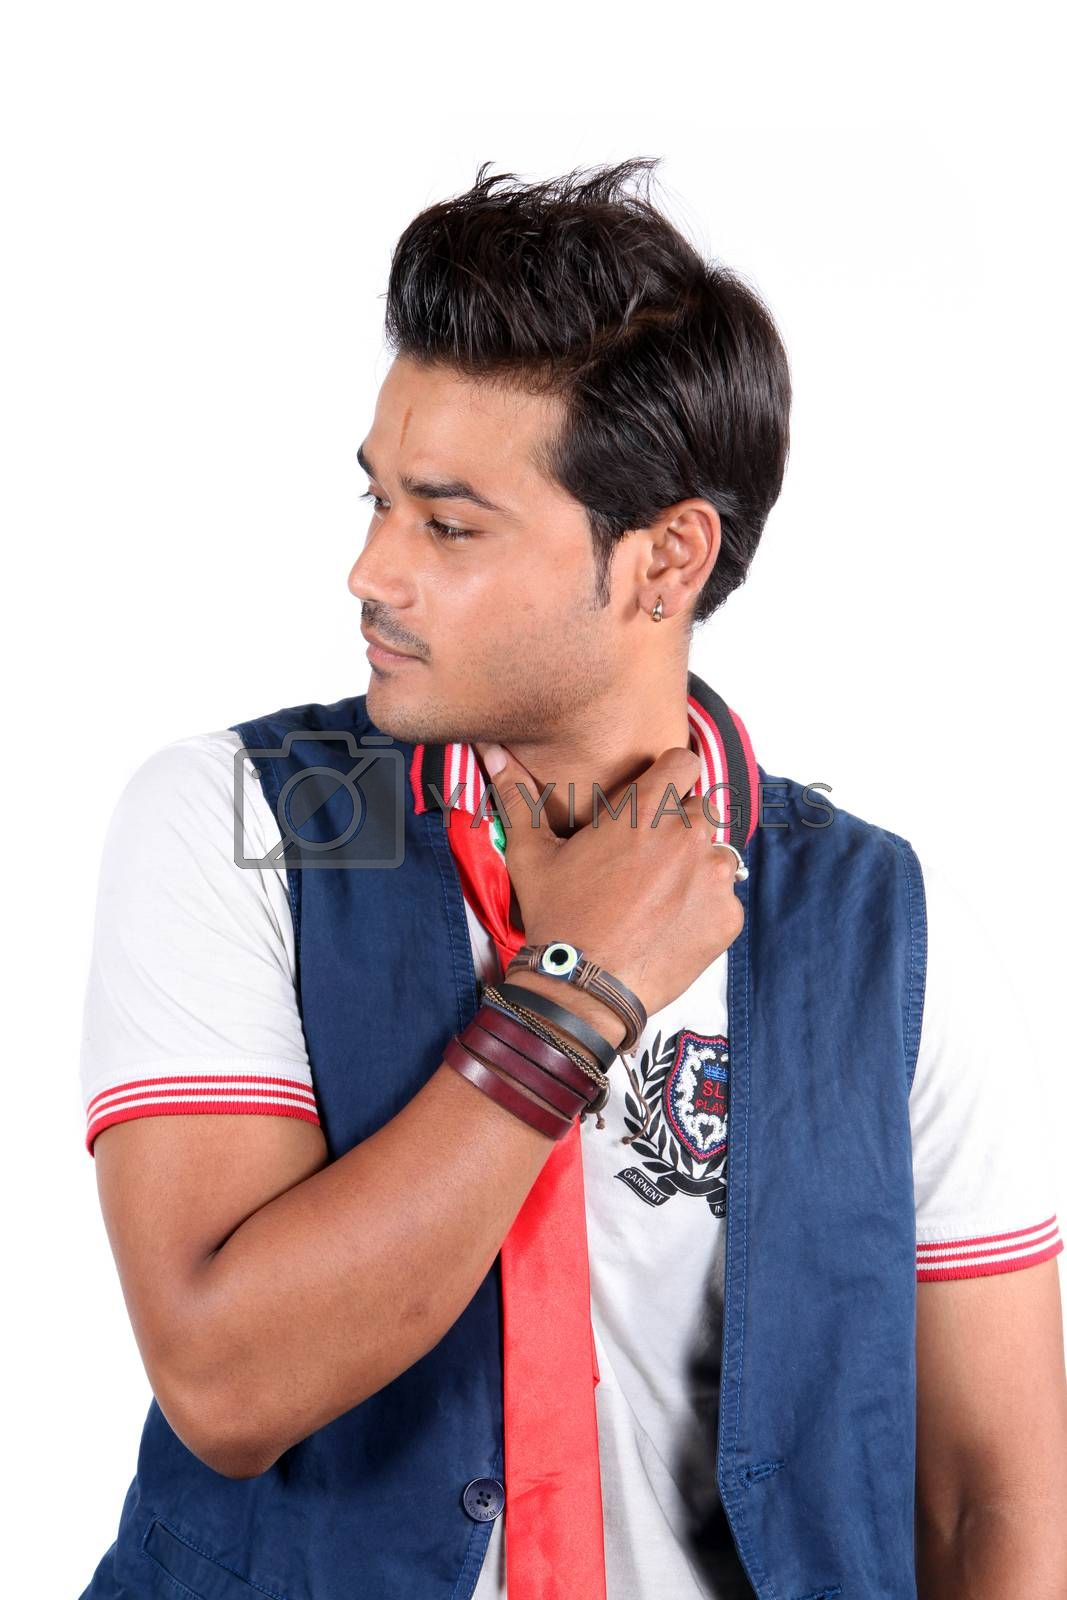 A handsome young Indian guy lost in his thoughts, on white studio background.